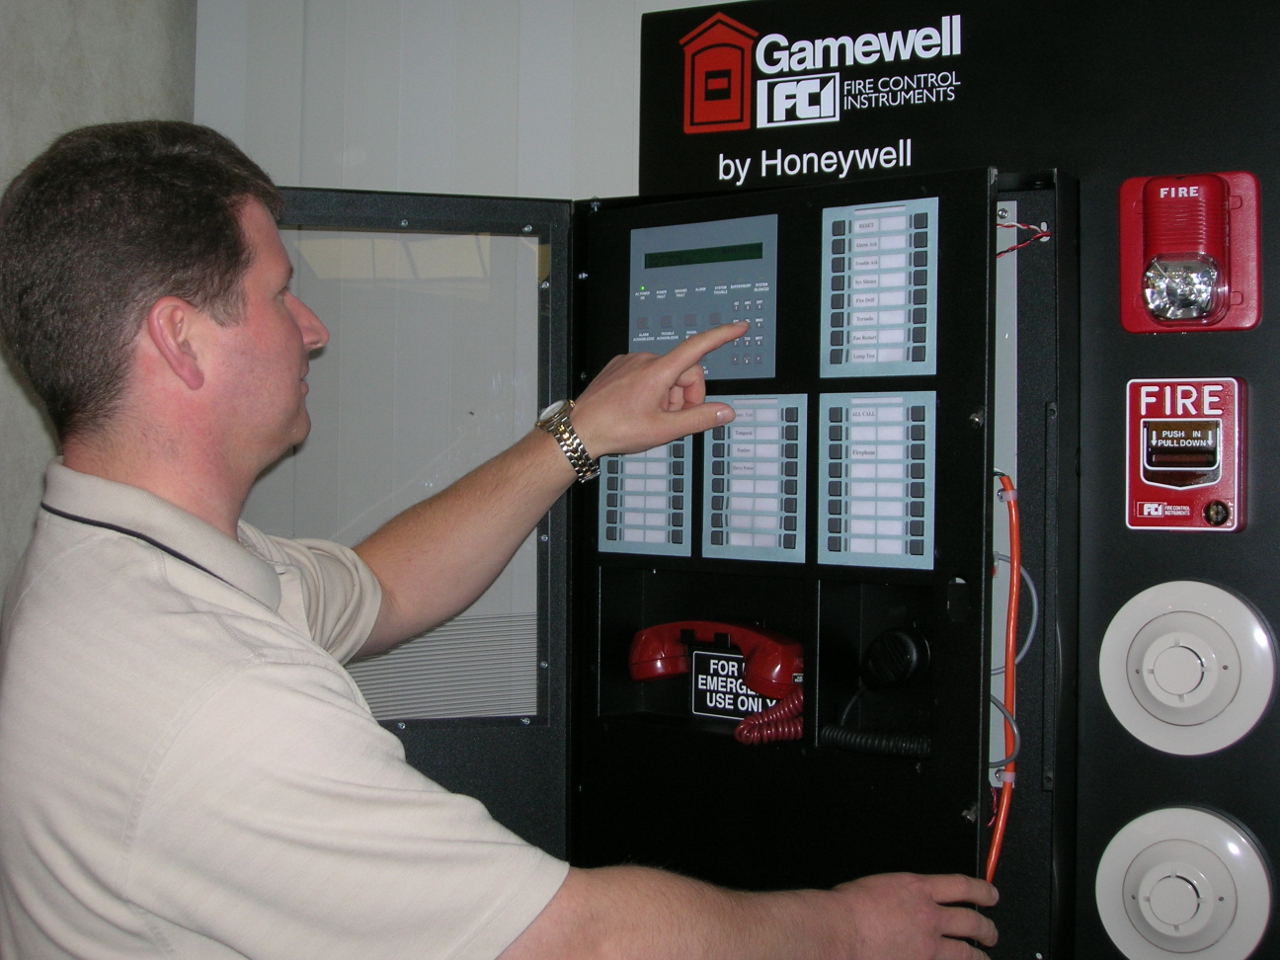 Commercial Phone System Wiring Guide And Troubleshooting Of Nec Diagram Fire Alarm Systems Buildipedia Cable Business Installation